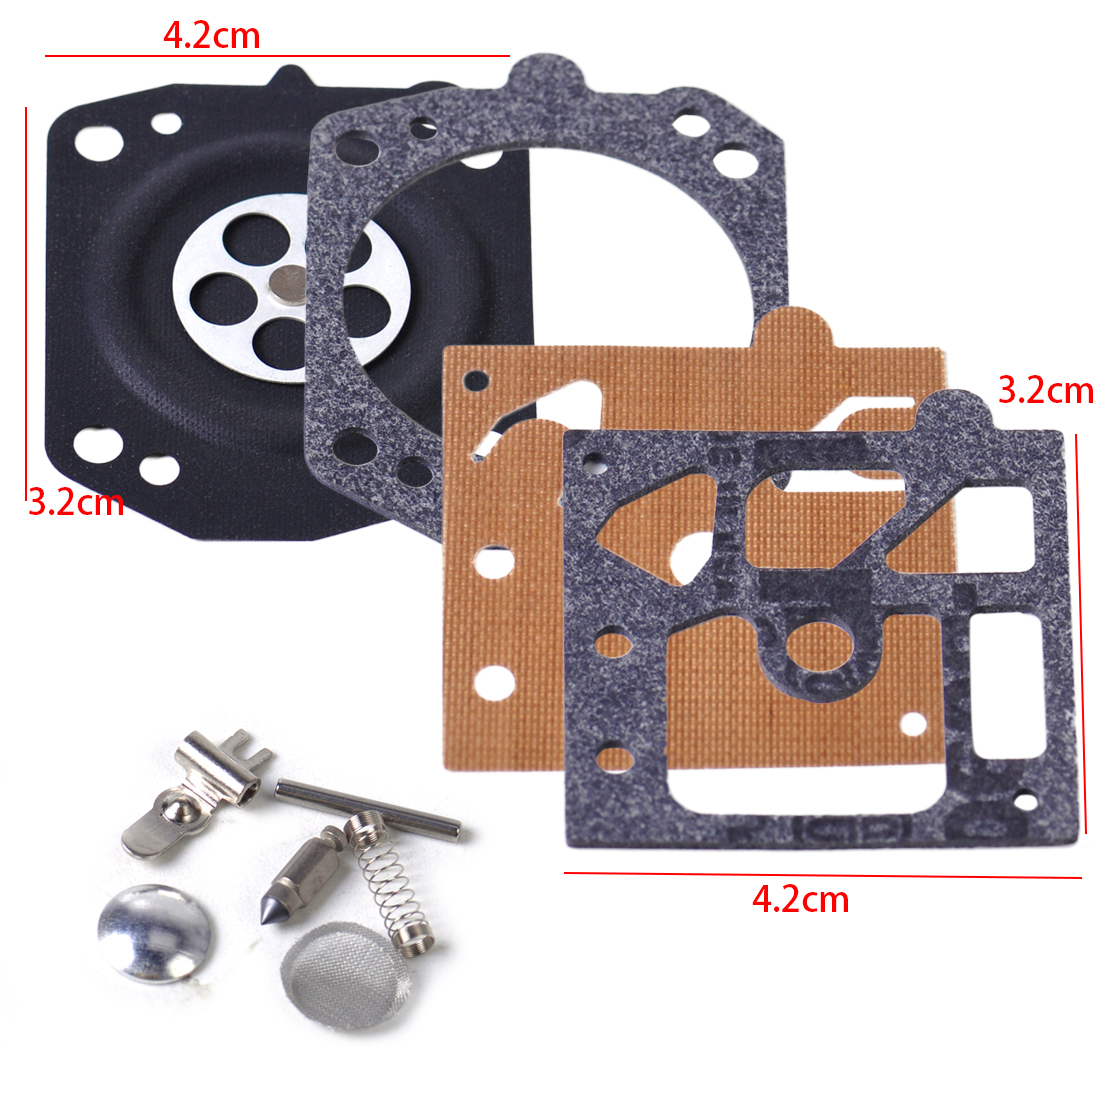 LETAOSK High Quality Carburetor Carb Repair Replace Diaphragm Gasket Kit For Walbro K10-HD STIHL 027 029 039 MS270 MS290 MS390